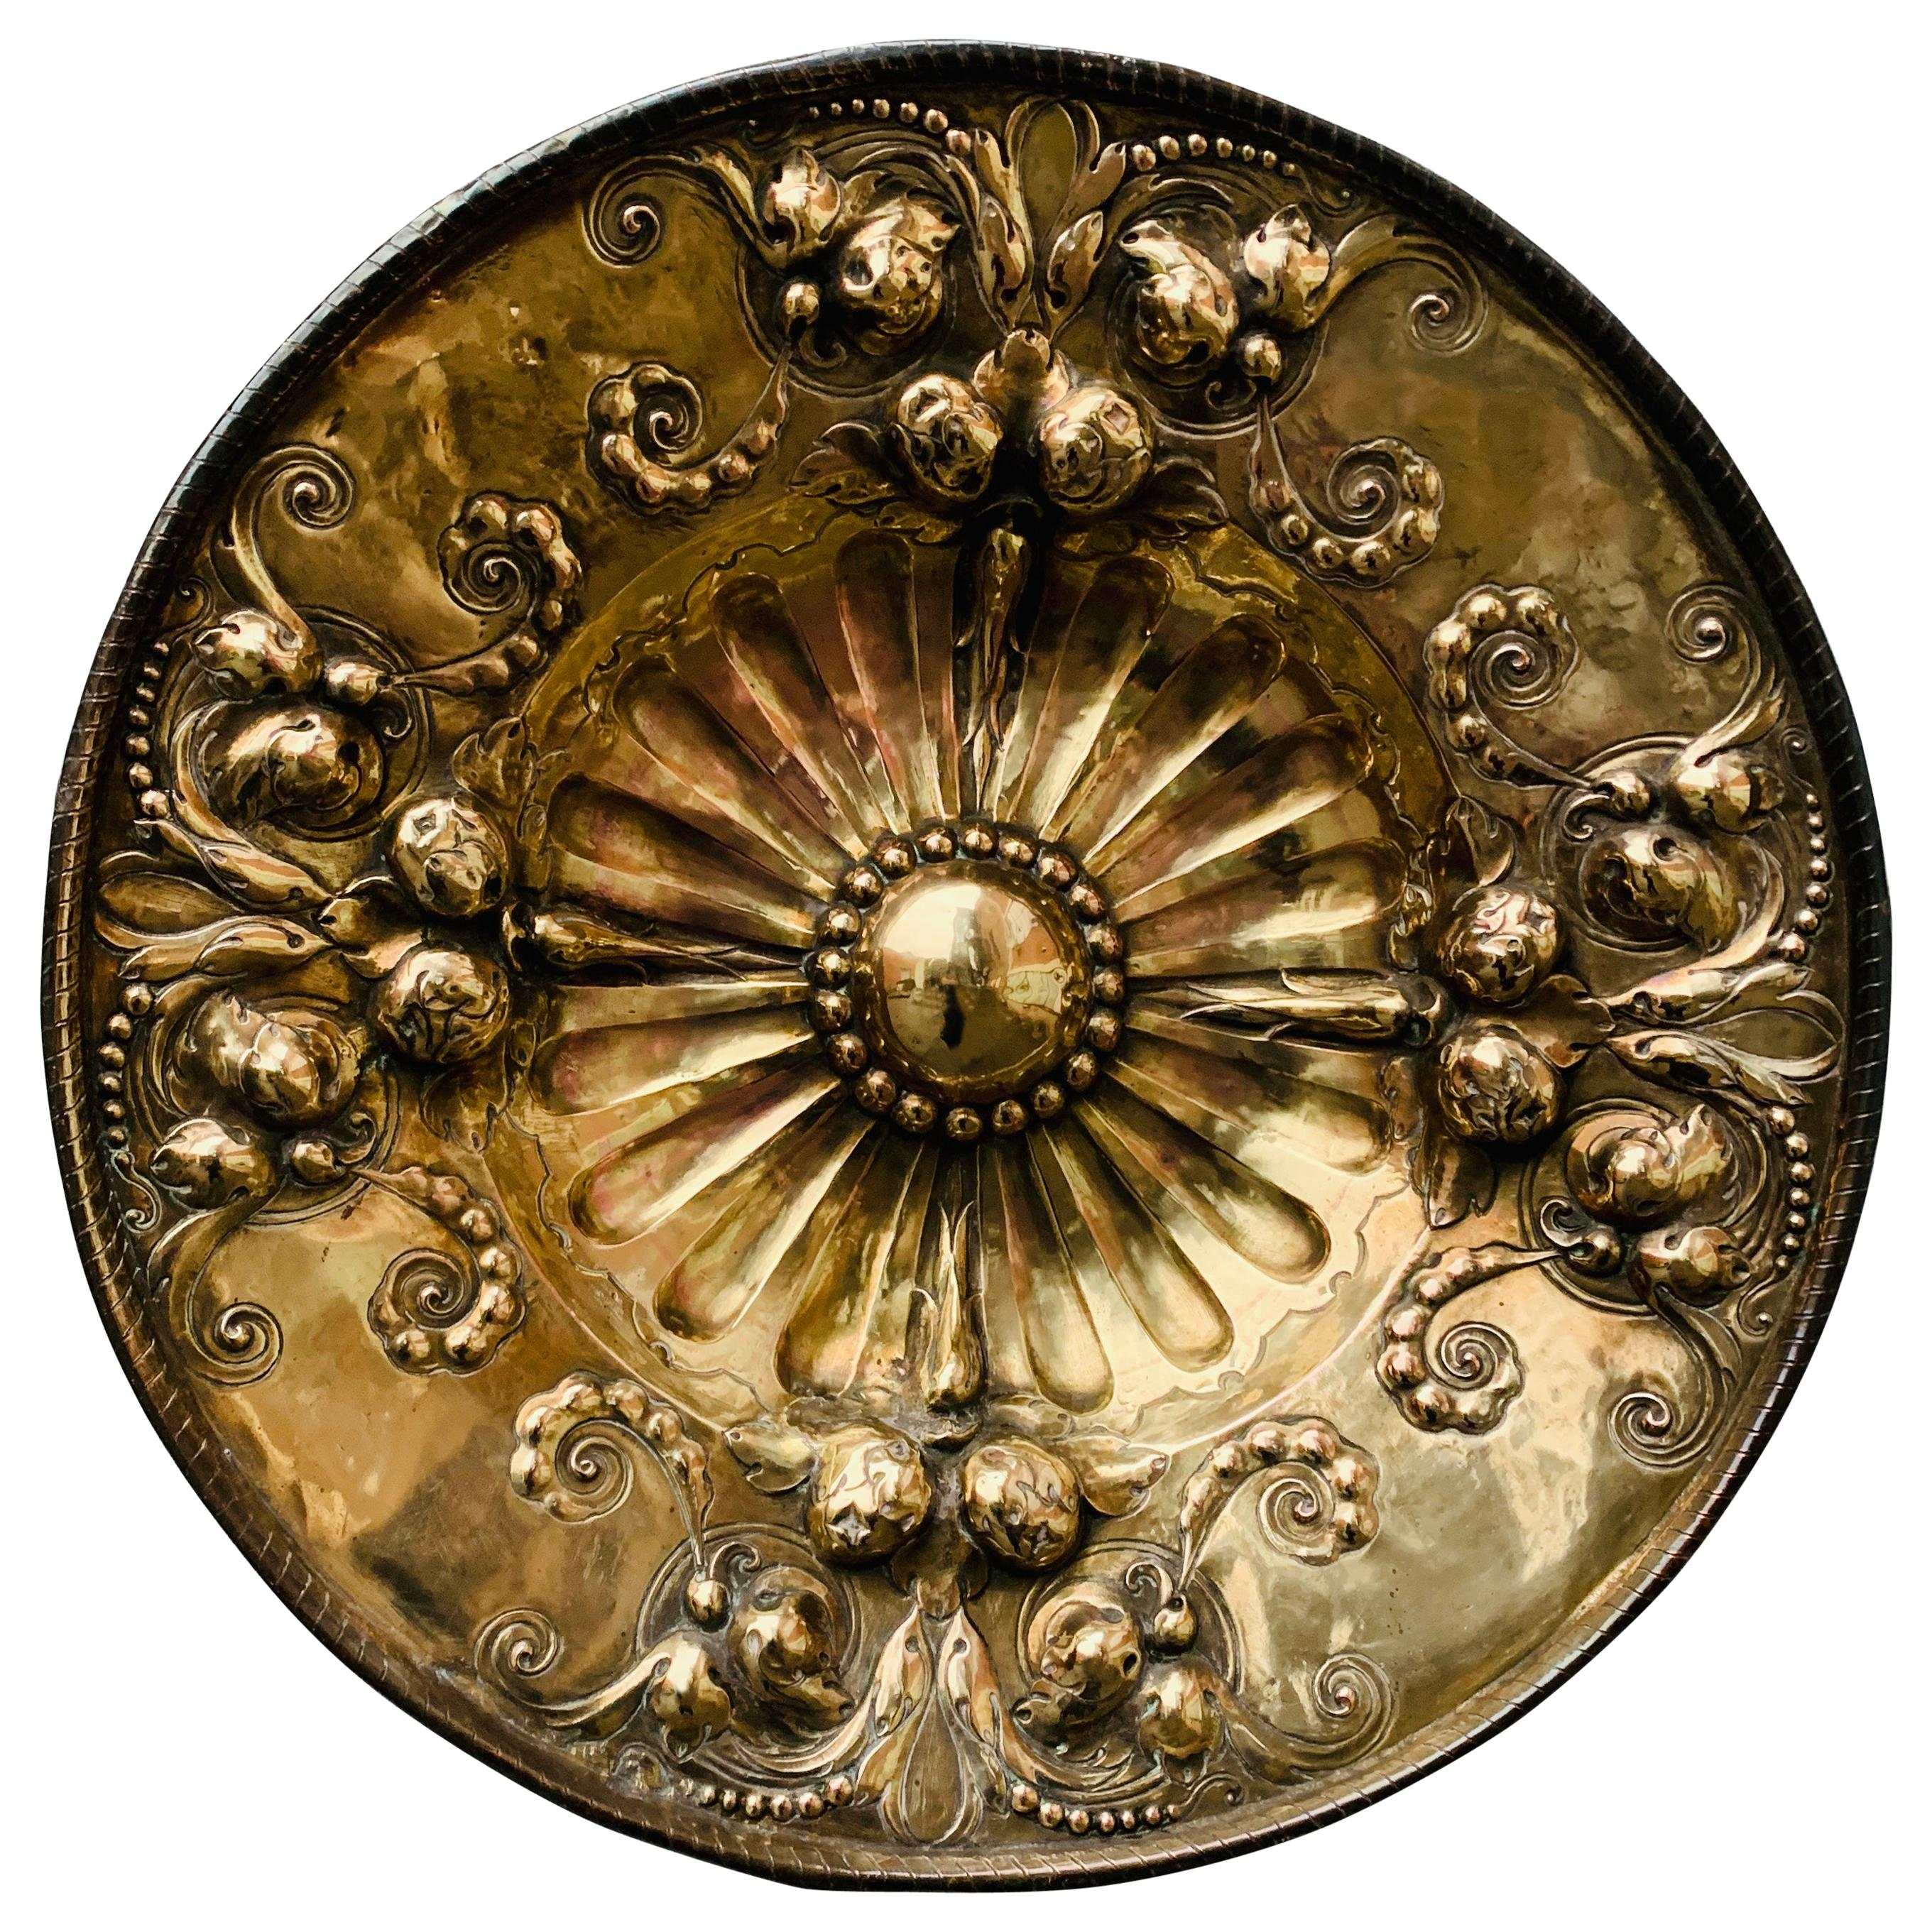 19th Century Baroque Style Baptismal Charger in Brass